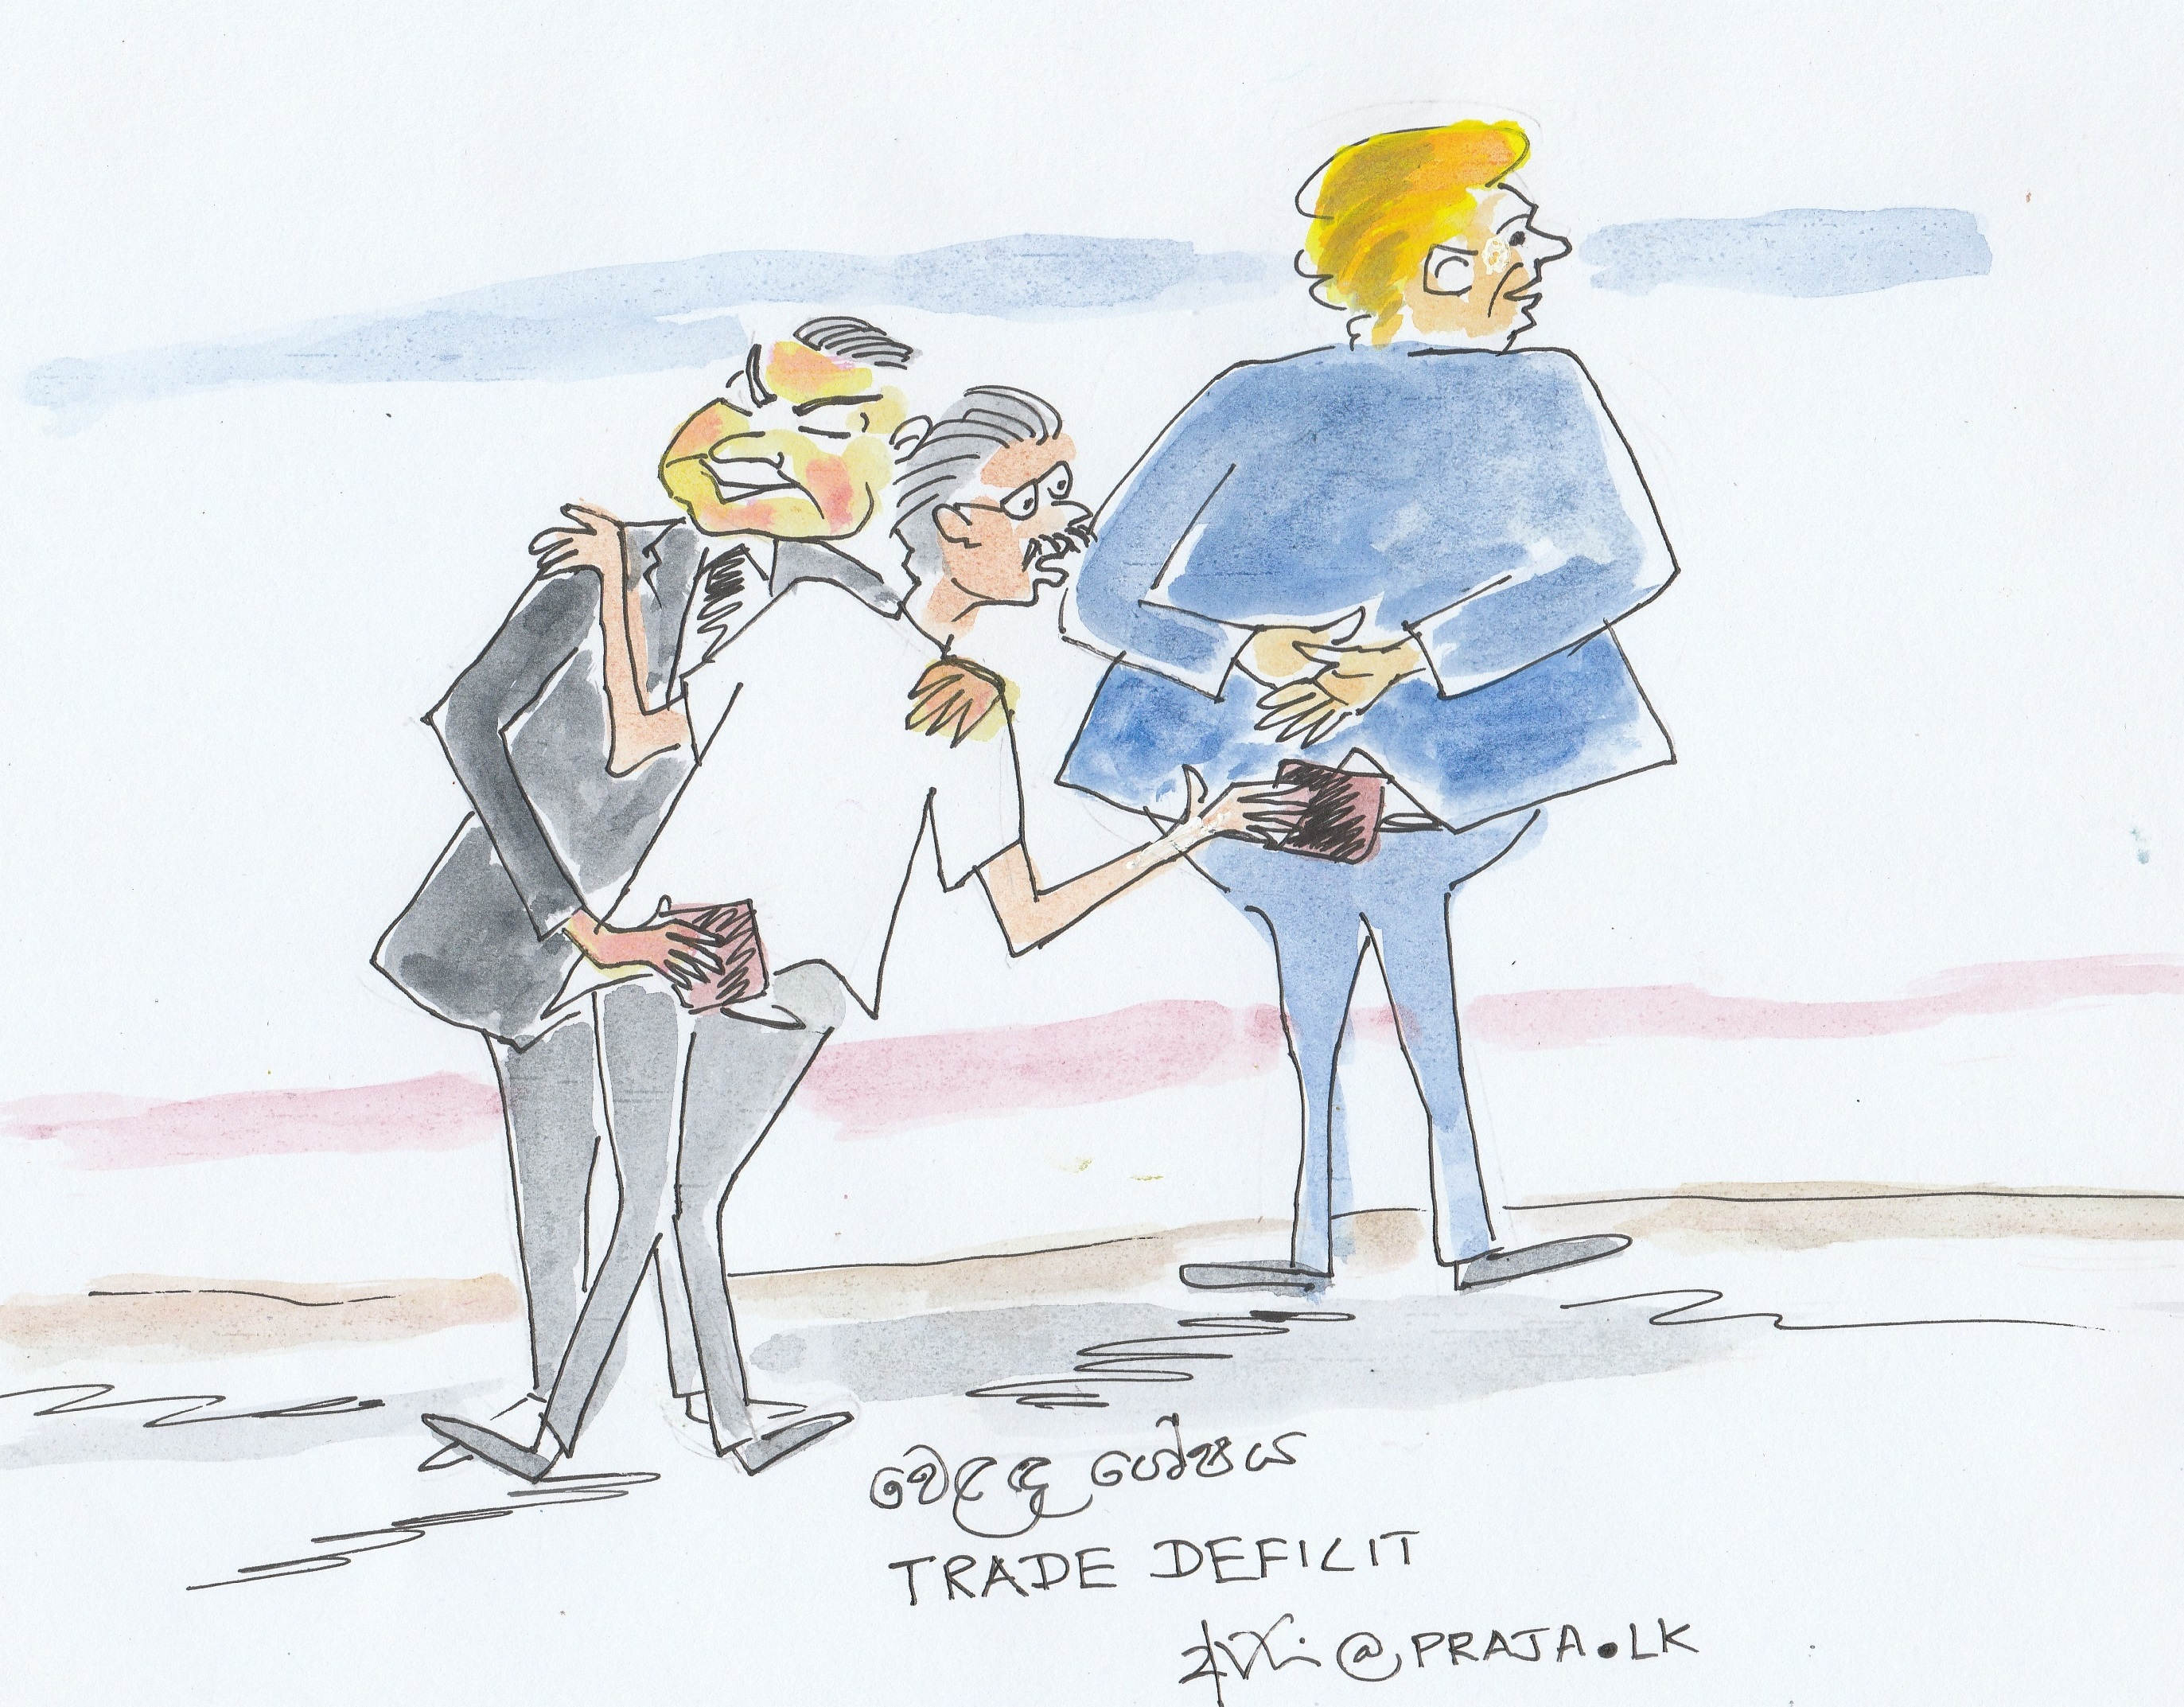 Trade deficits of Sri Lanka with China and US - cartoon